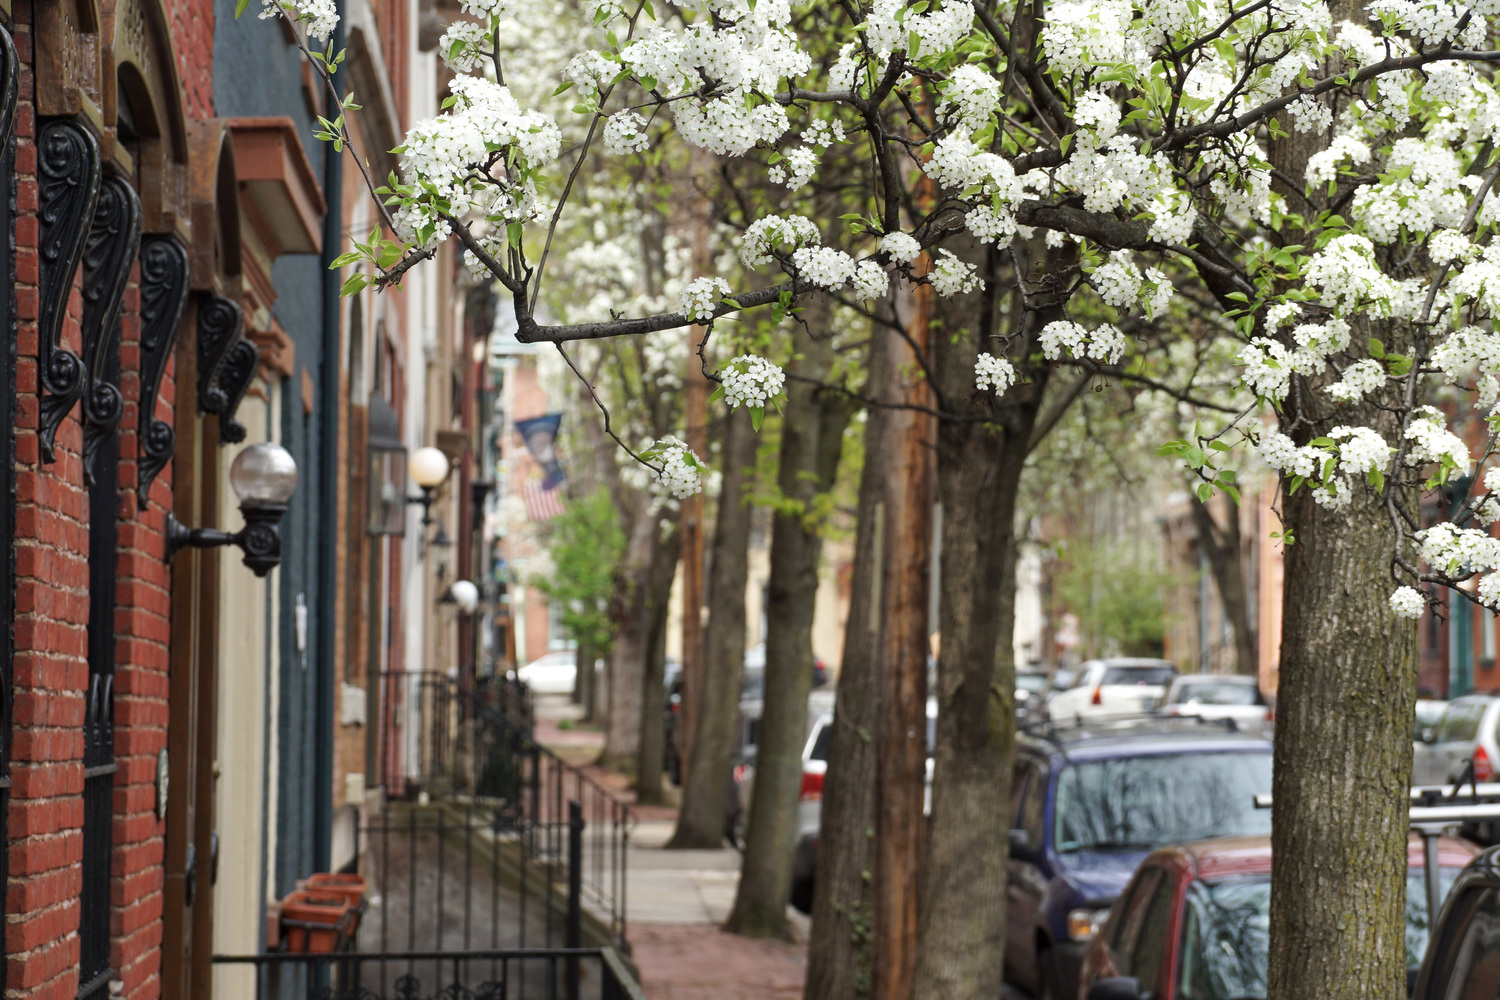 Trees in bloom along a street in the district.